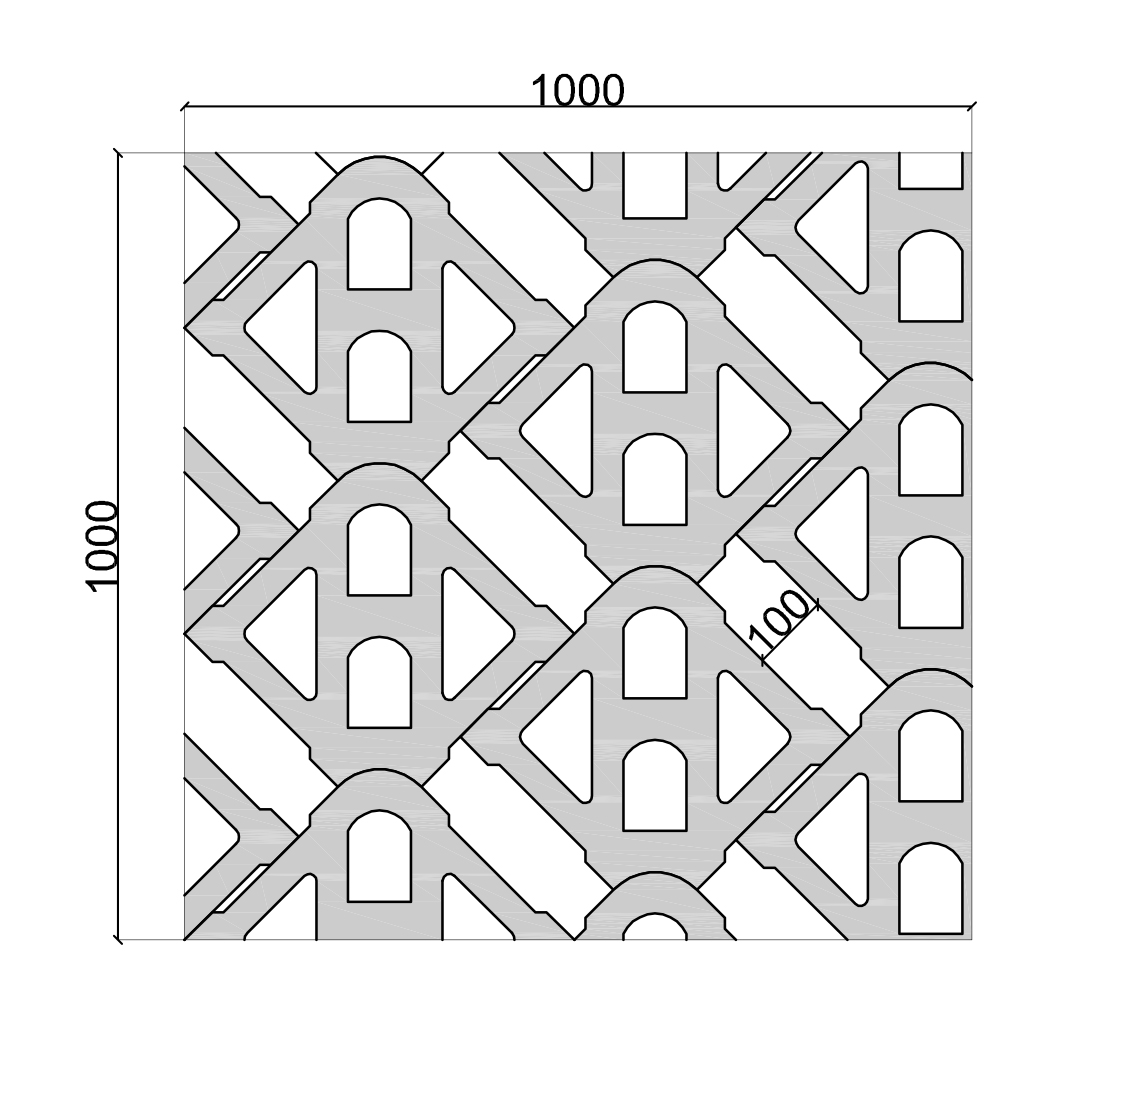 UNIDIRECTIONAL FORMATION (EXTENDED) hardlawn paver